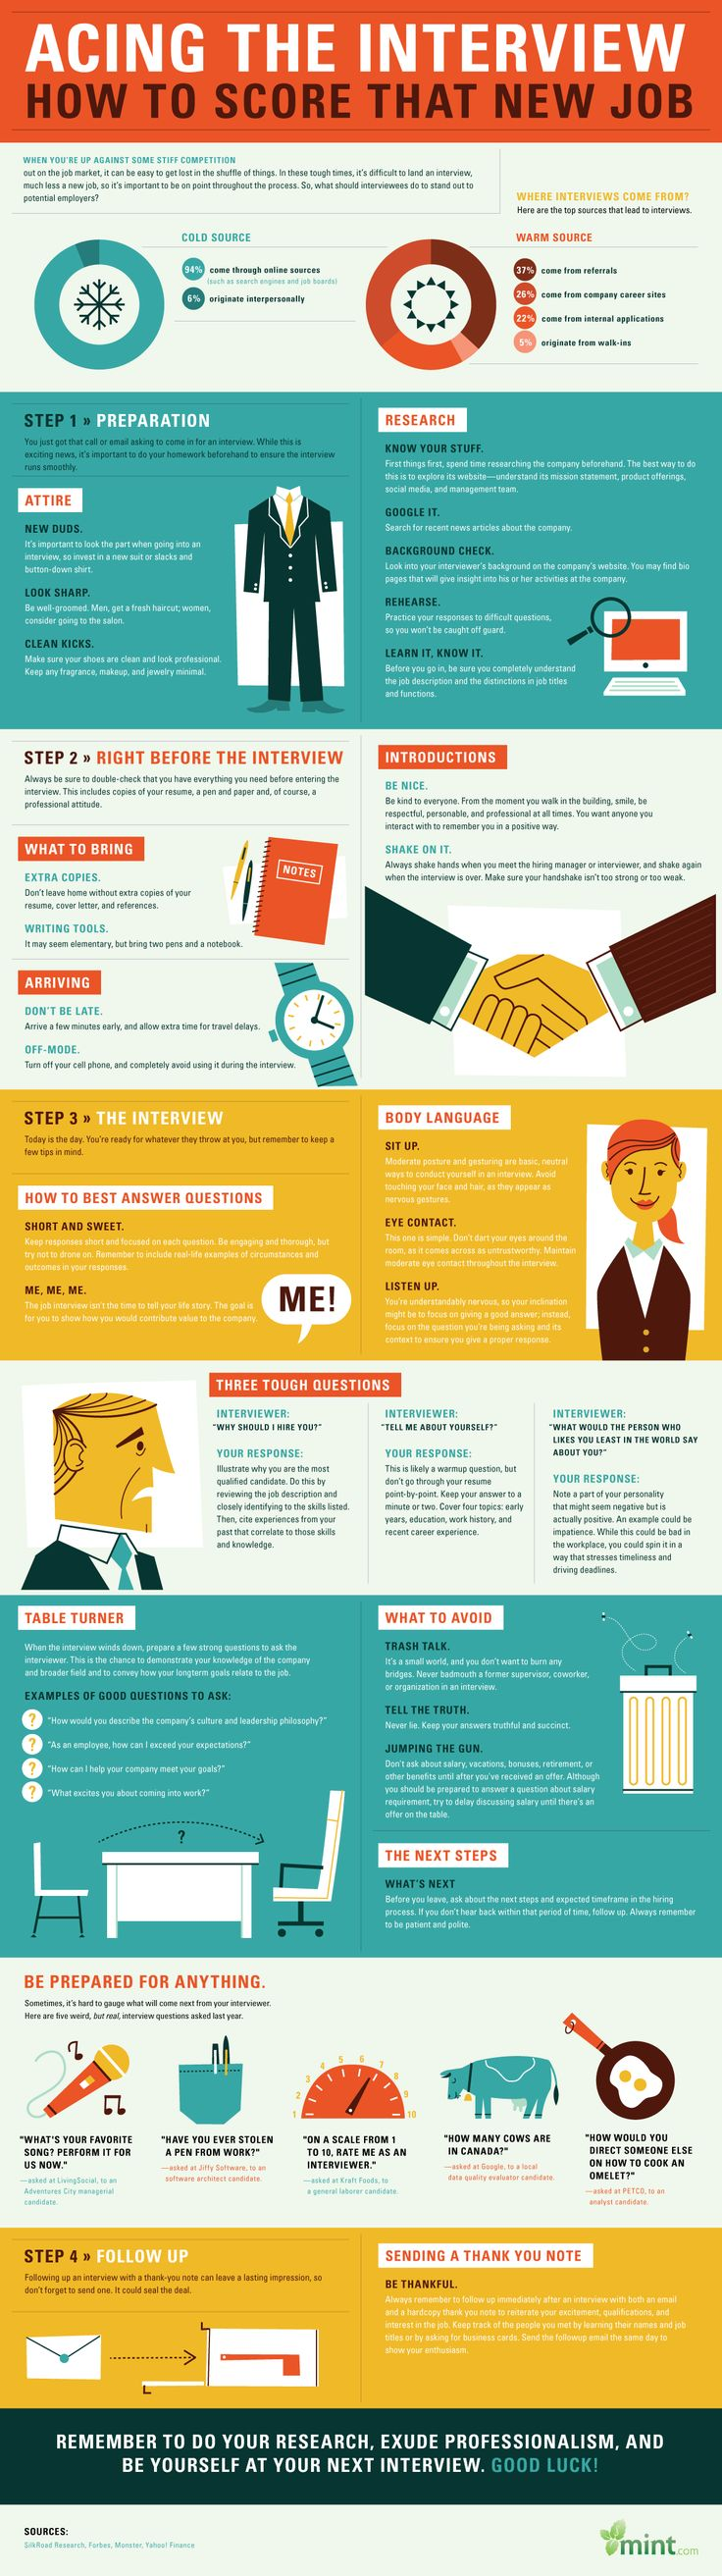 How to Ace the Interview and Secure Your Dream Job!